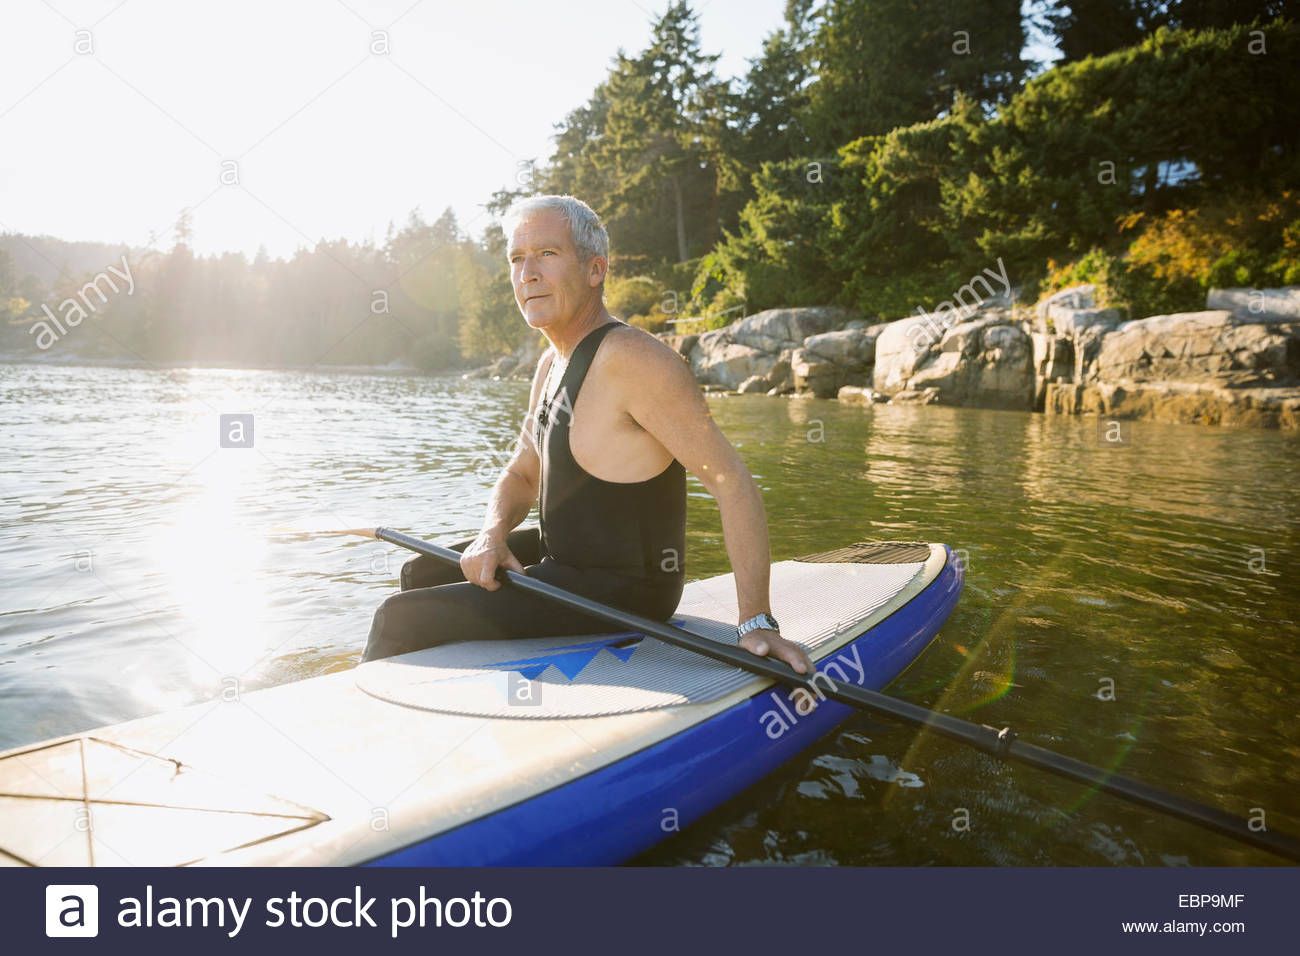 Senior man sitting on paddle board in ocean - Stock Image